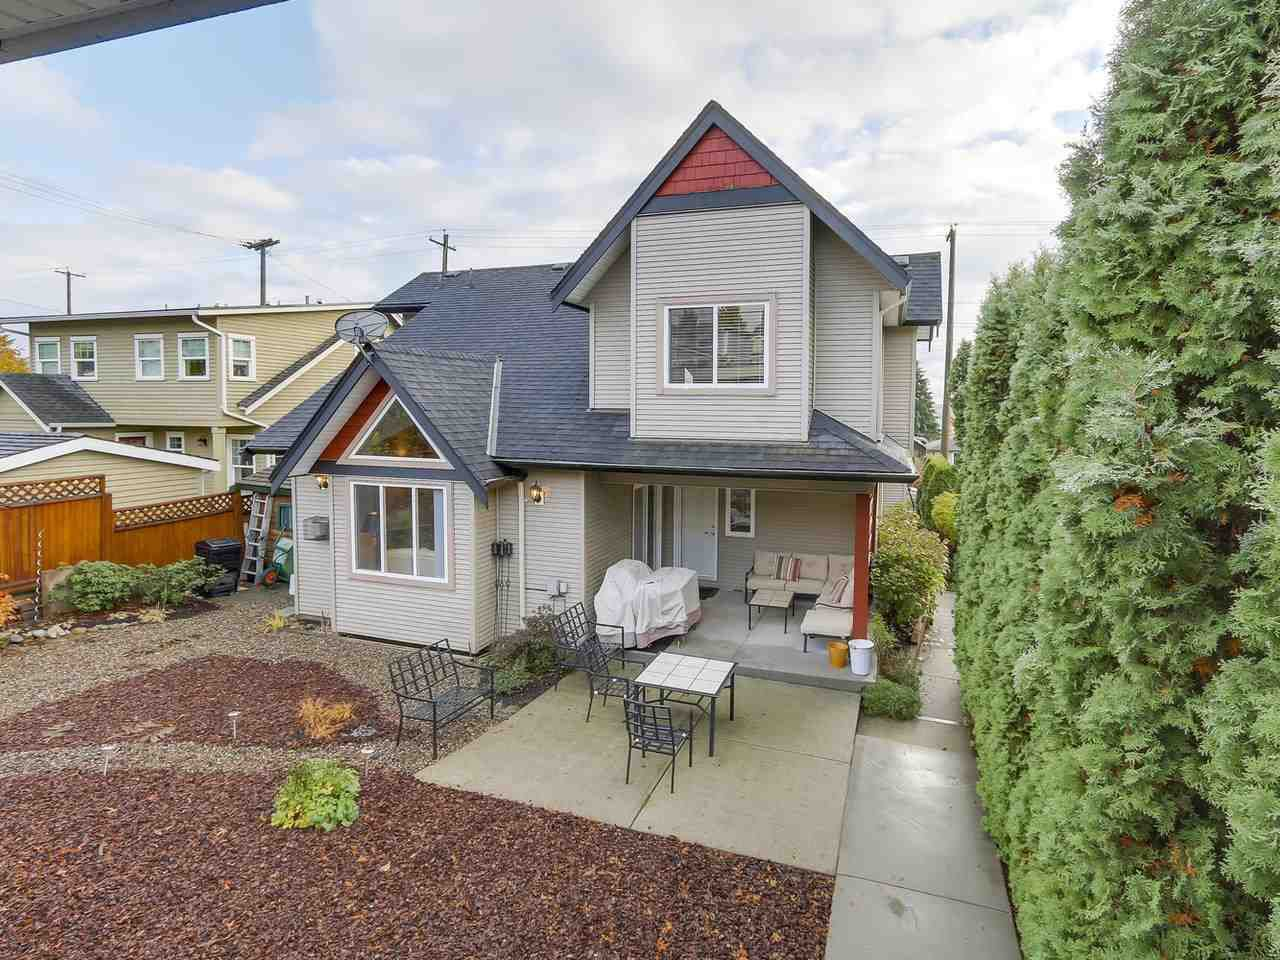 Photo 20: Photos: 658 E 4TH STREET in North Vancouver: Queensbury House for sale : MLS®# R2222993